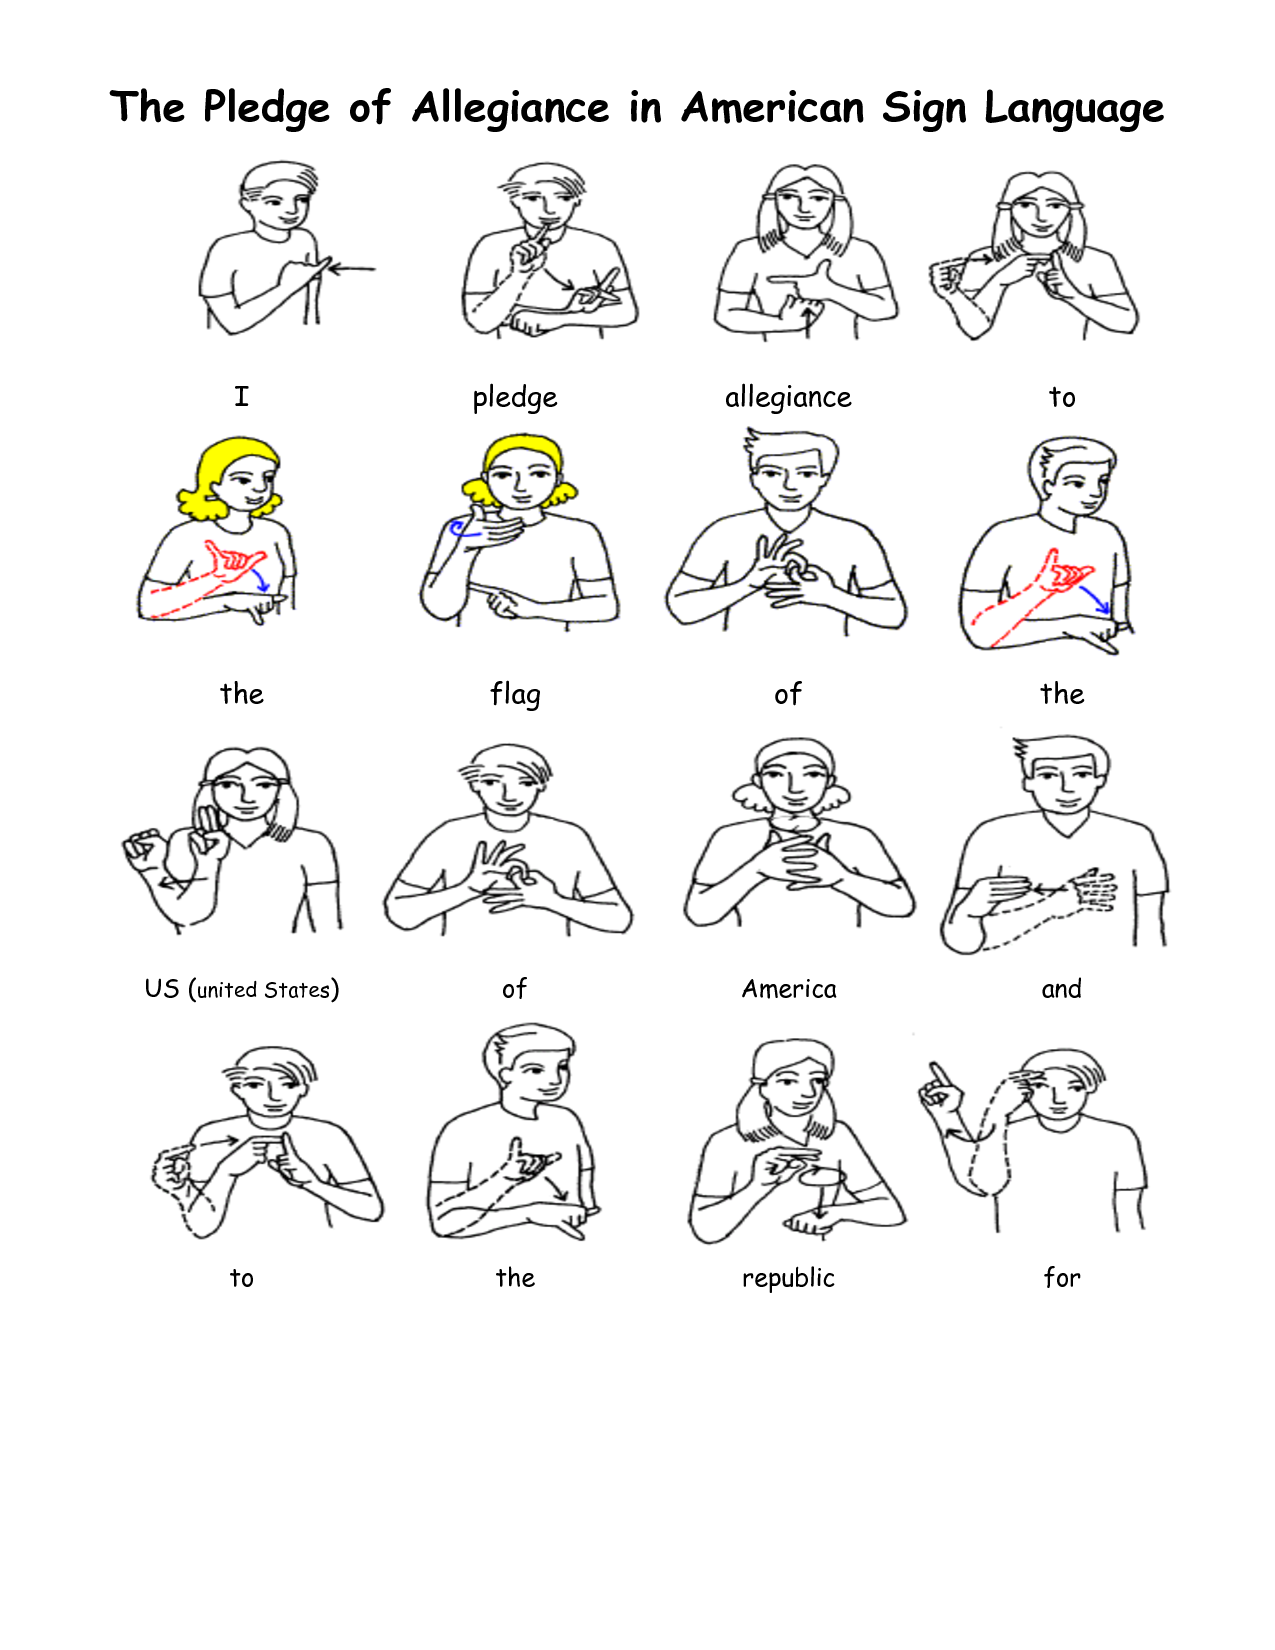 picture about Lord's Prayer Sign Language Printable referred to as Impression final result for lords prayer indication language printable asl